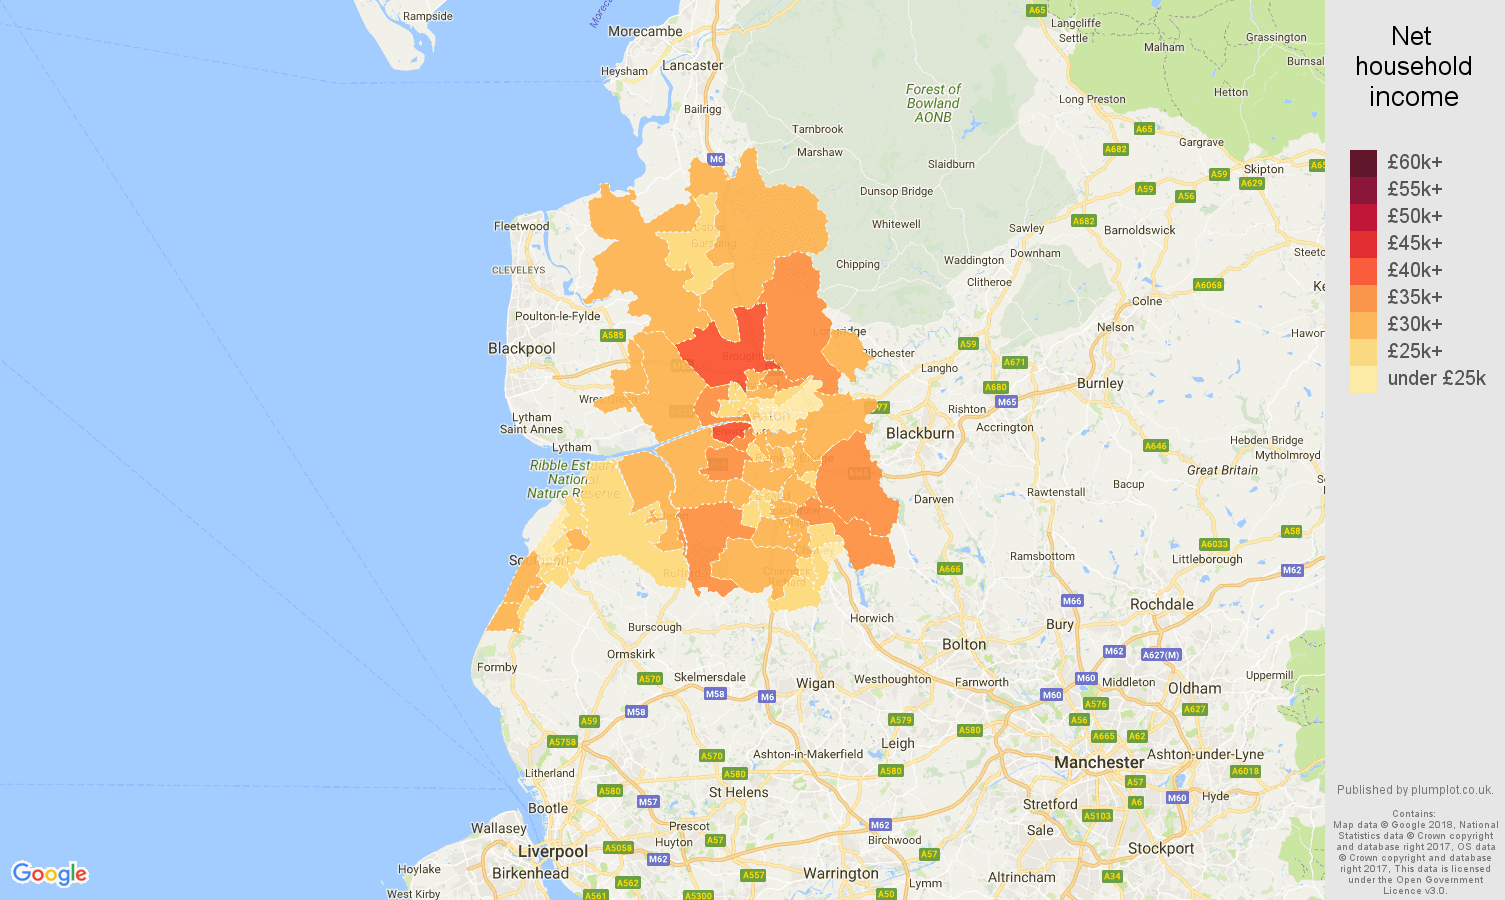 Preston net household income map